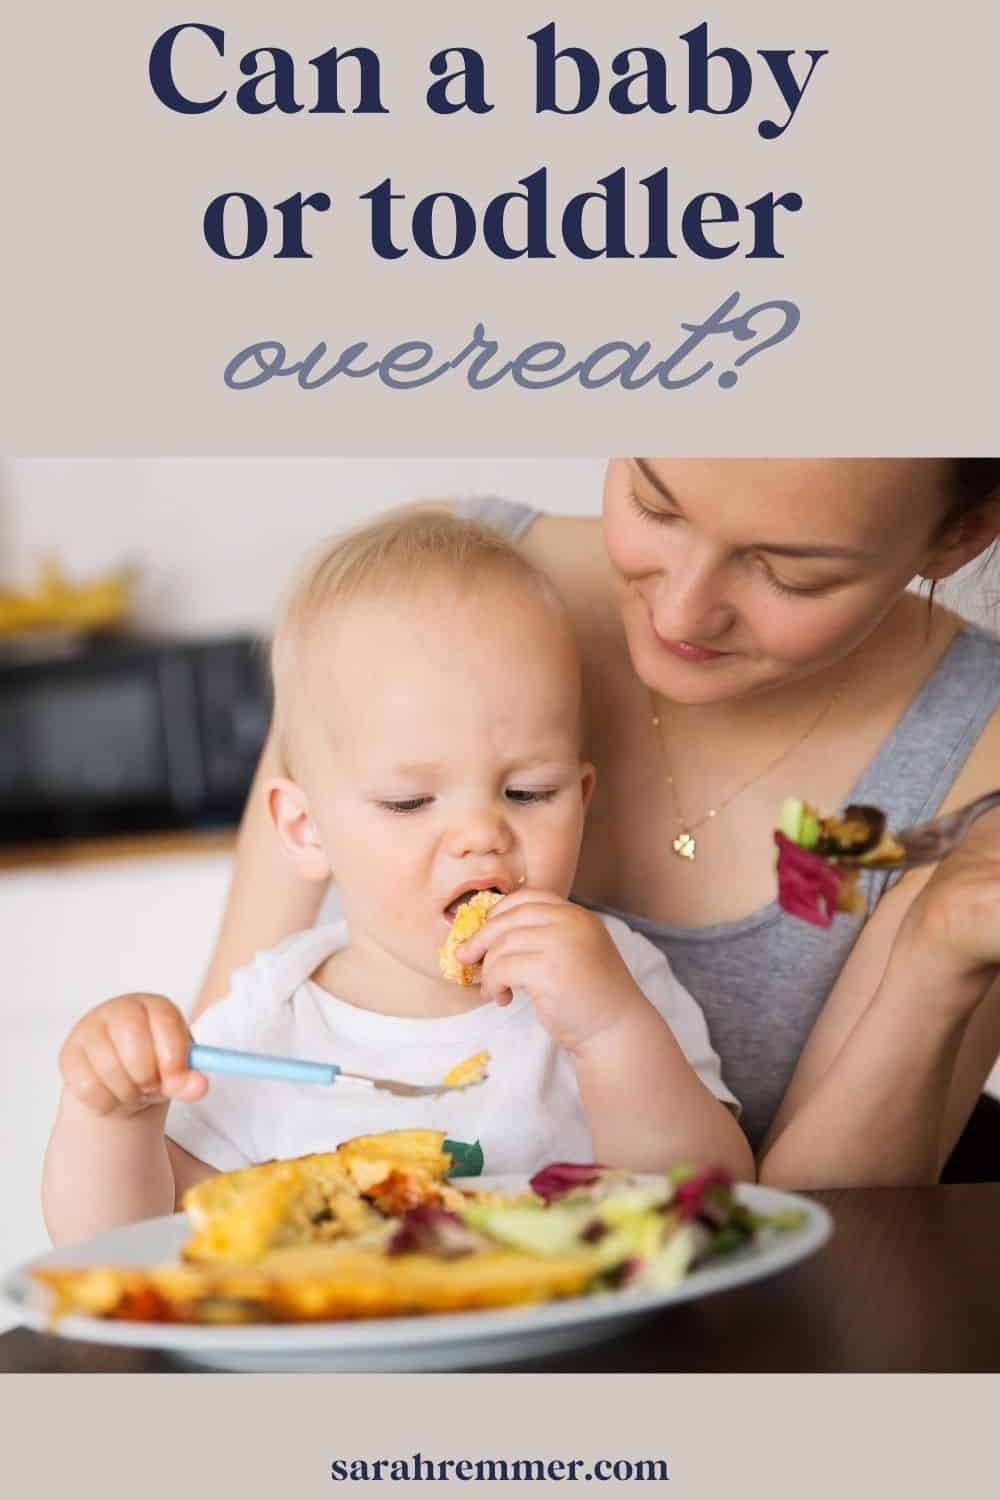 Can a baby or toddler overeat